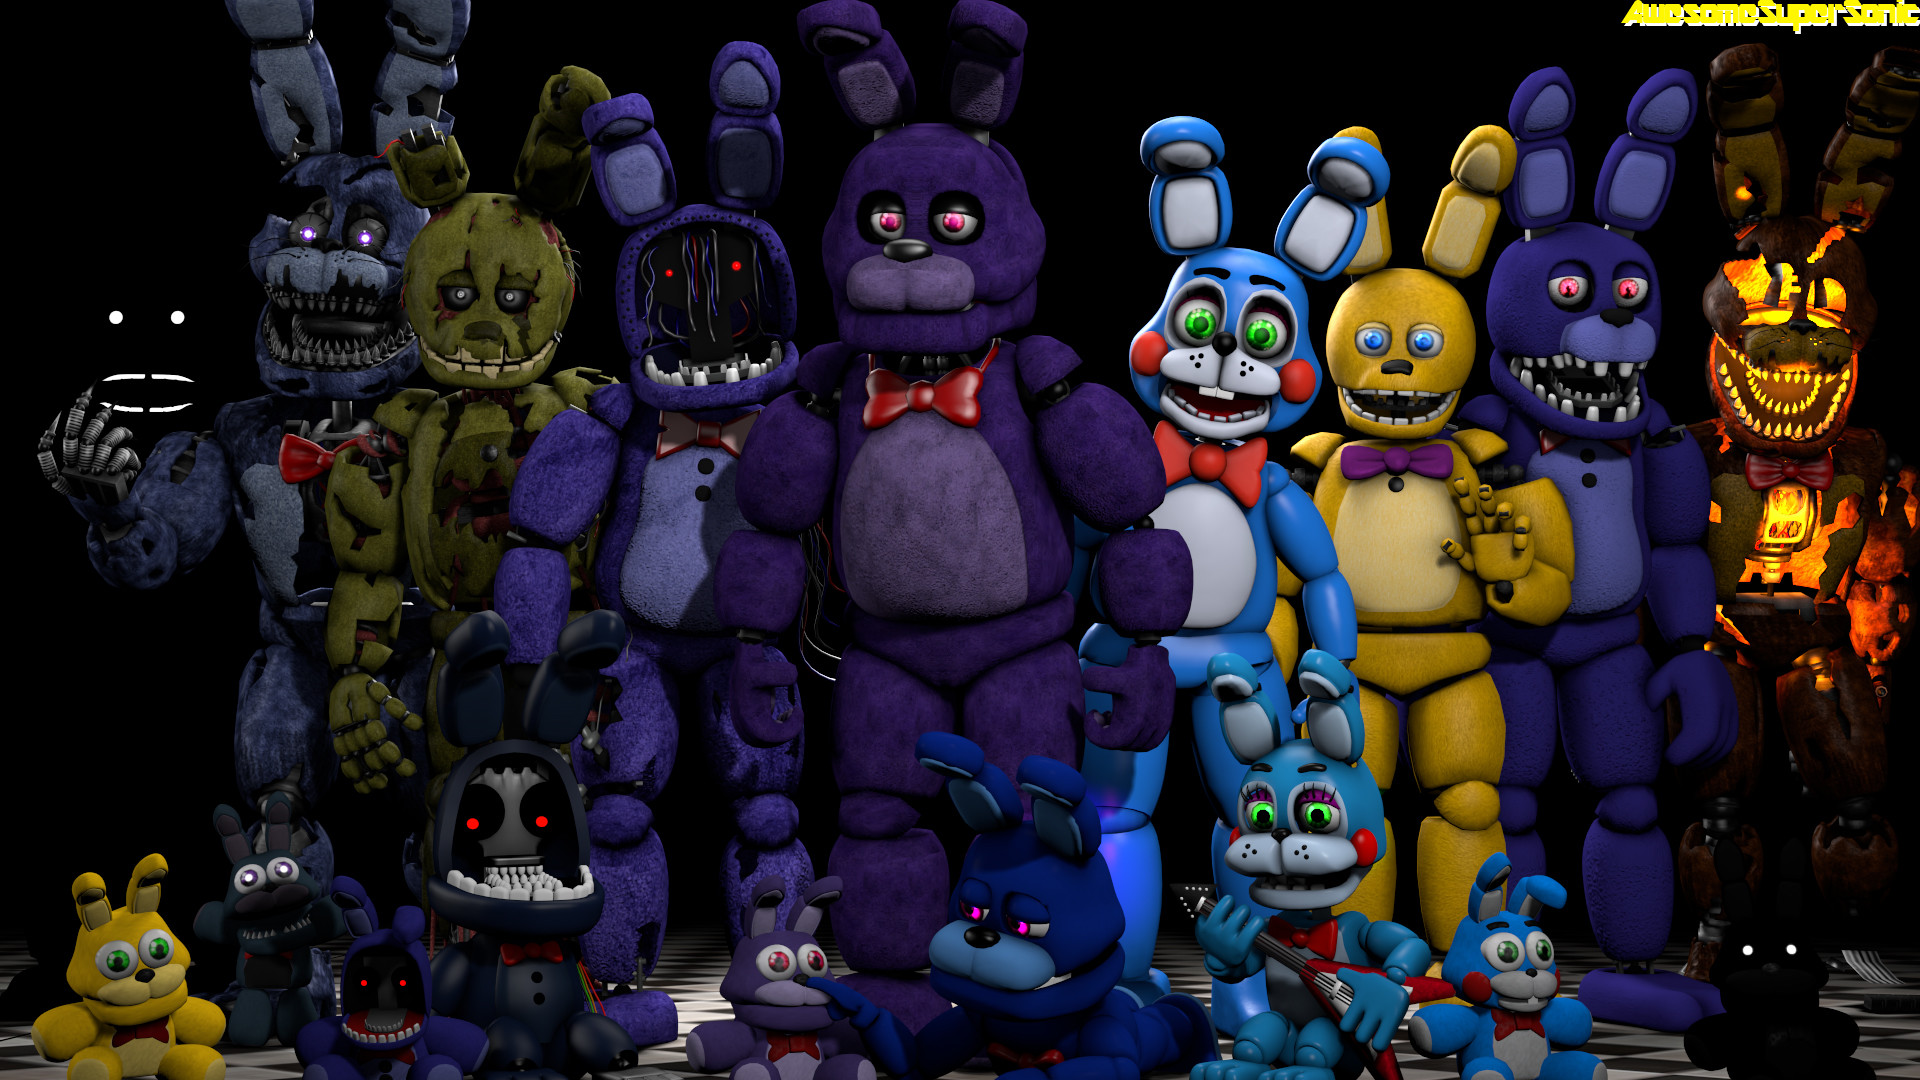 … FNaF] Bunnies by AwesomeSuperSonic